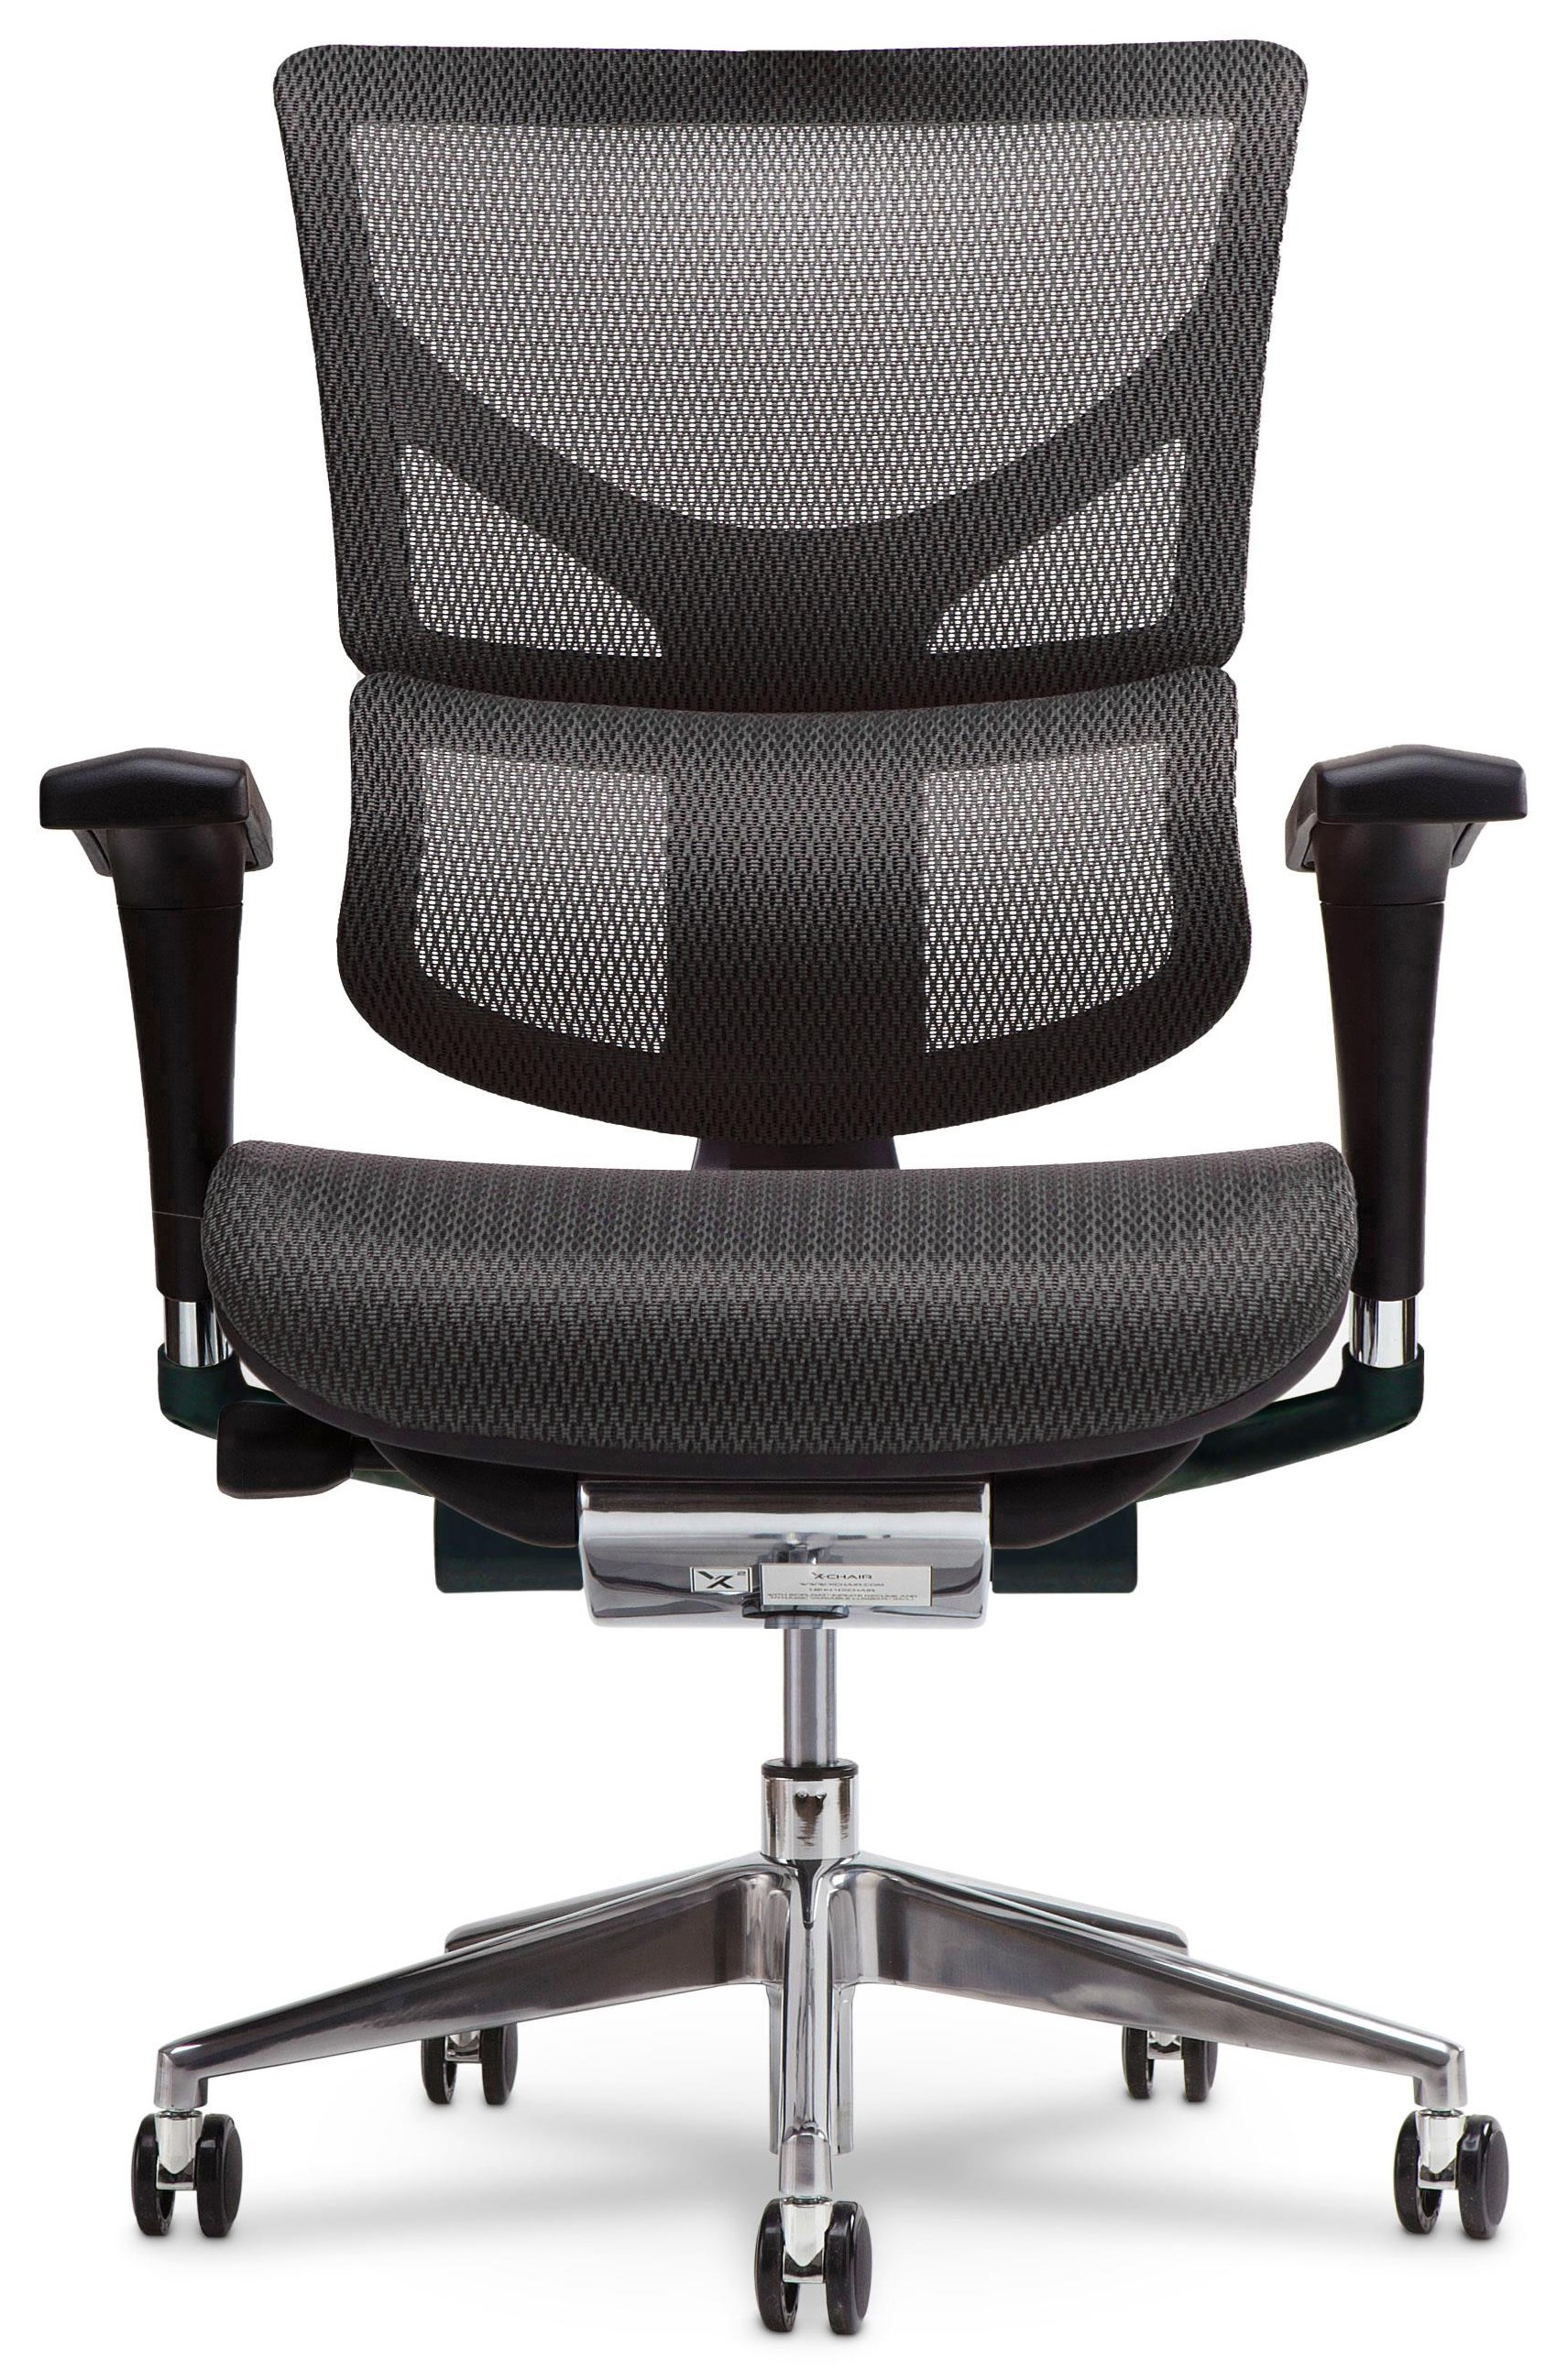 X-2 Plus Desk Chair by X-Chair at Belfort Furniture